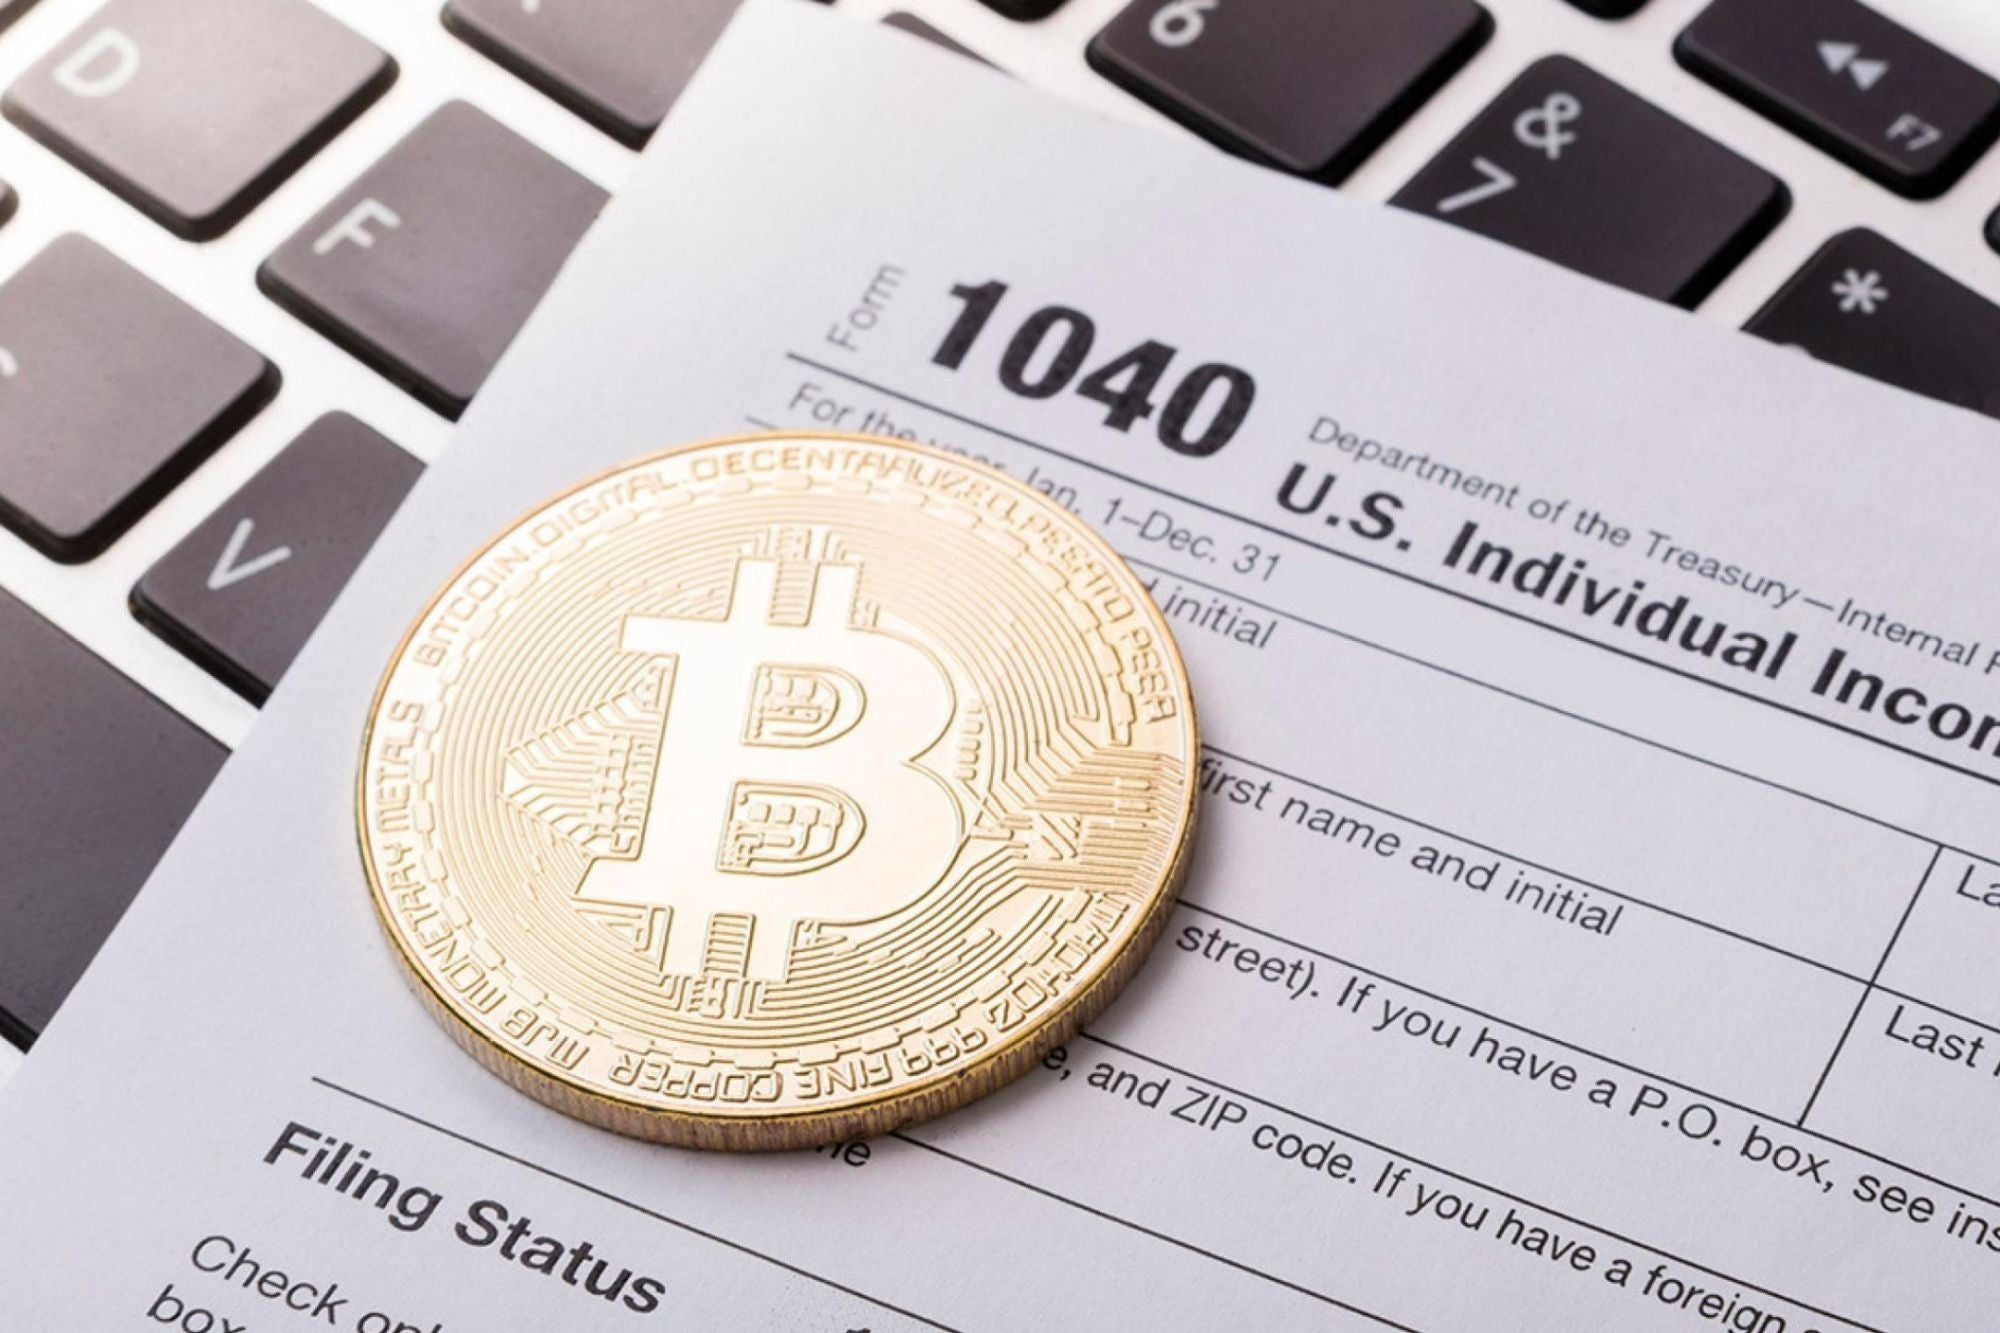 US Treasury to publish guidance on taxation of cryptocurrencies